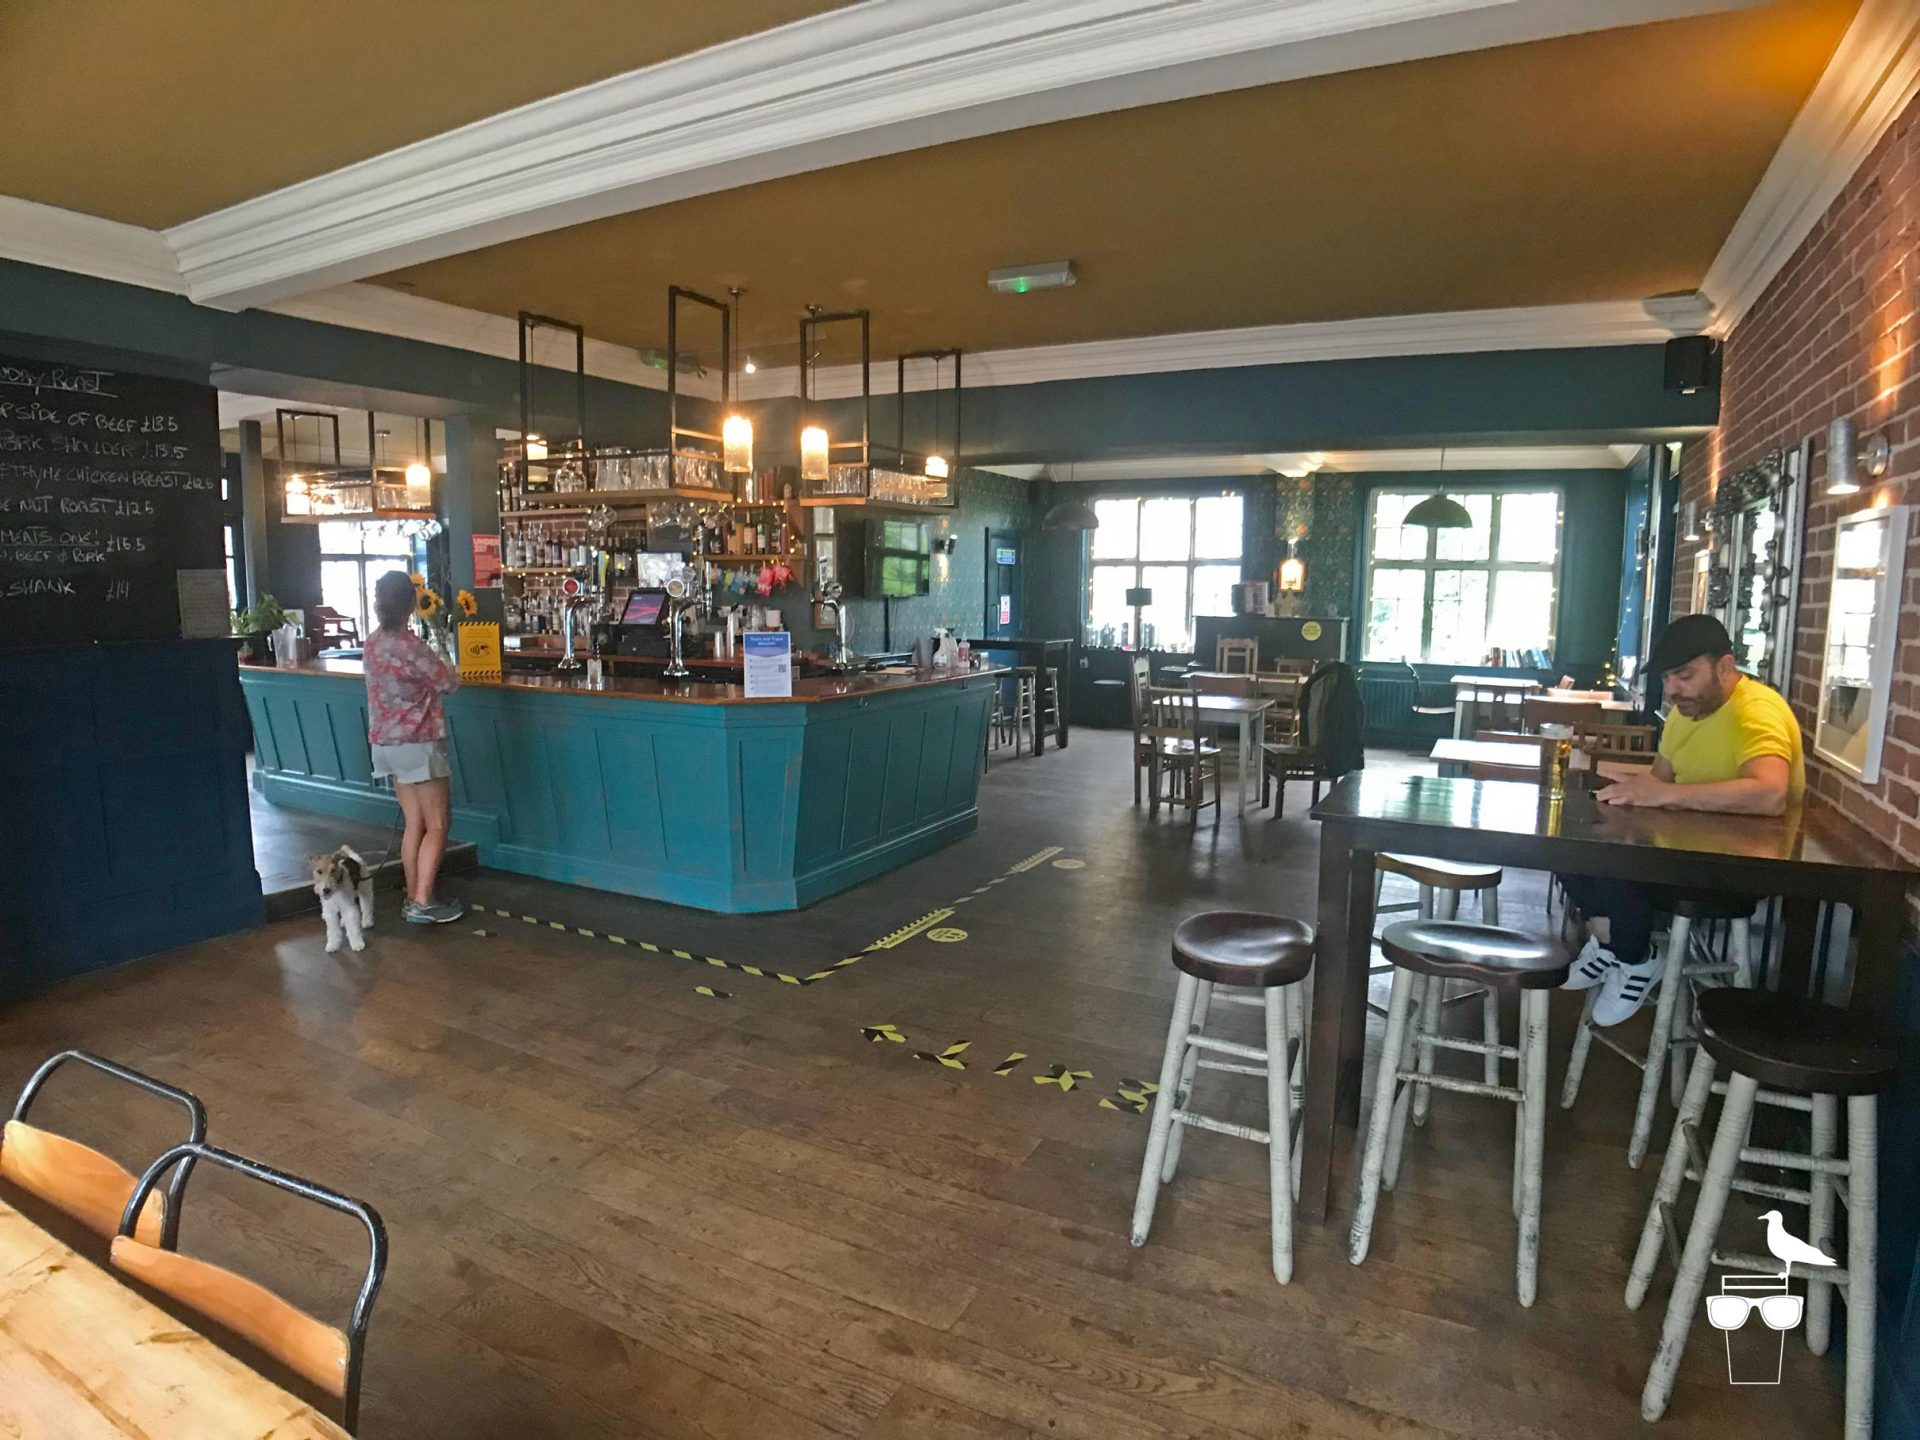 martha-gunn-pub-brighton-inside